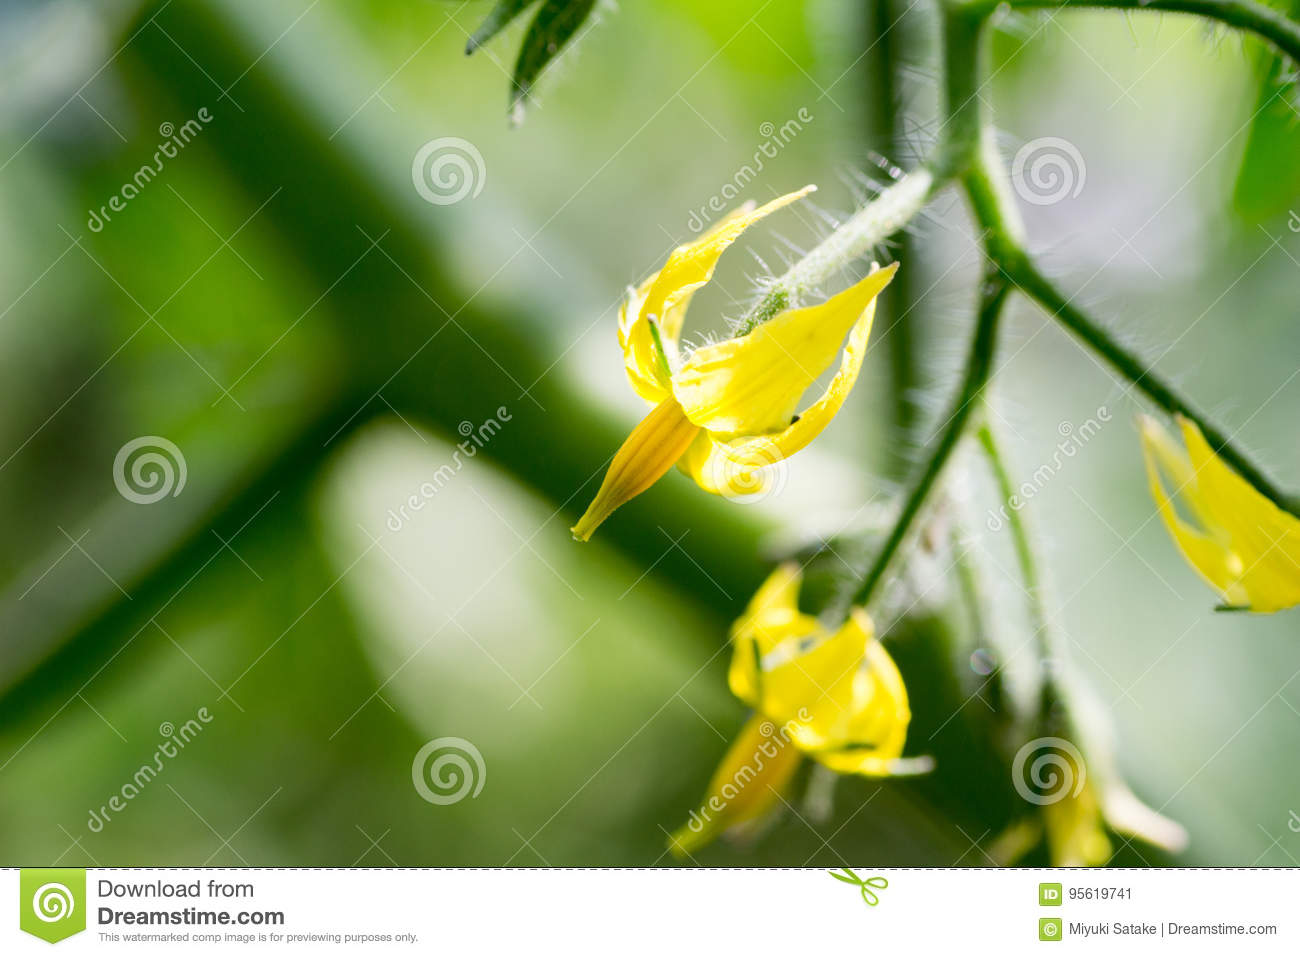 Flower of cherry tomato